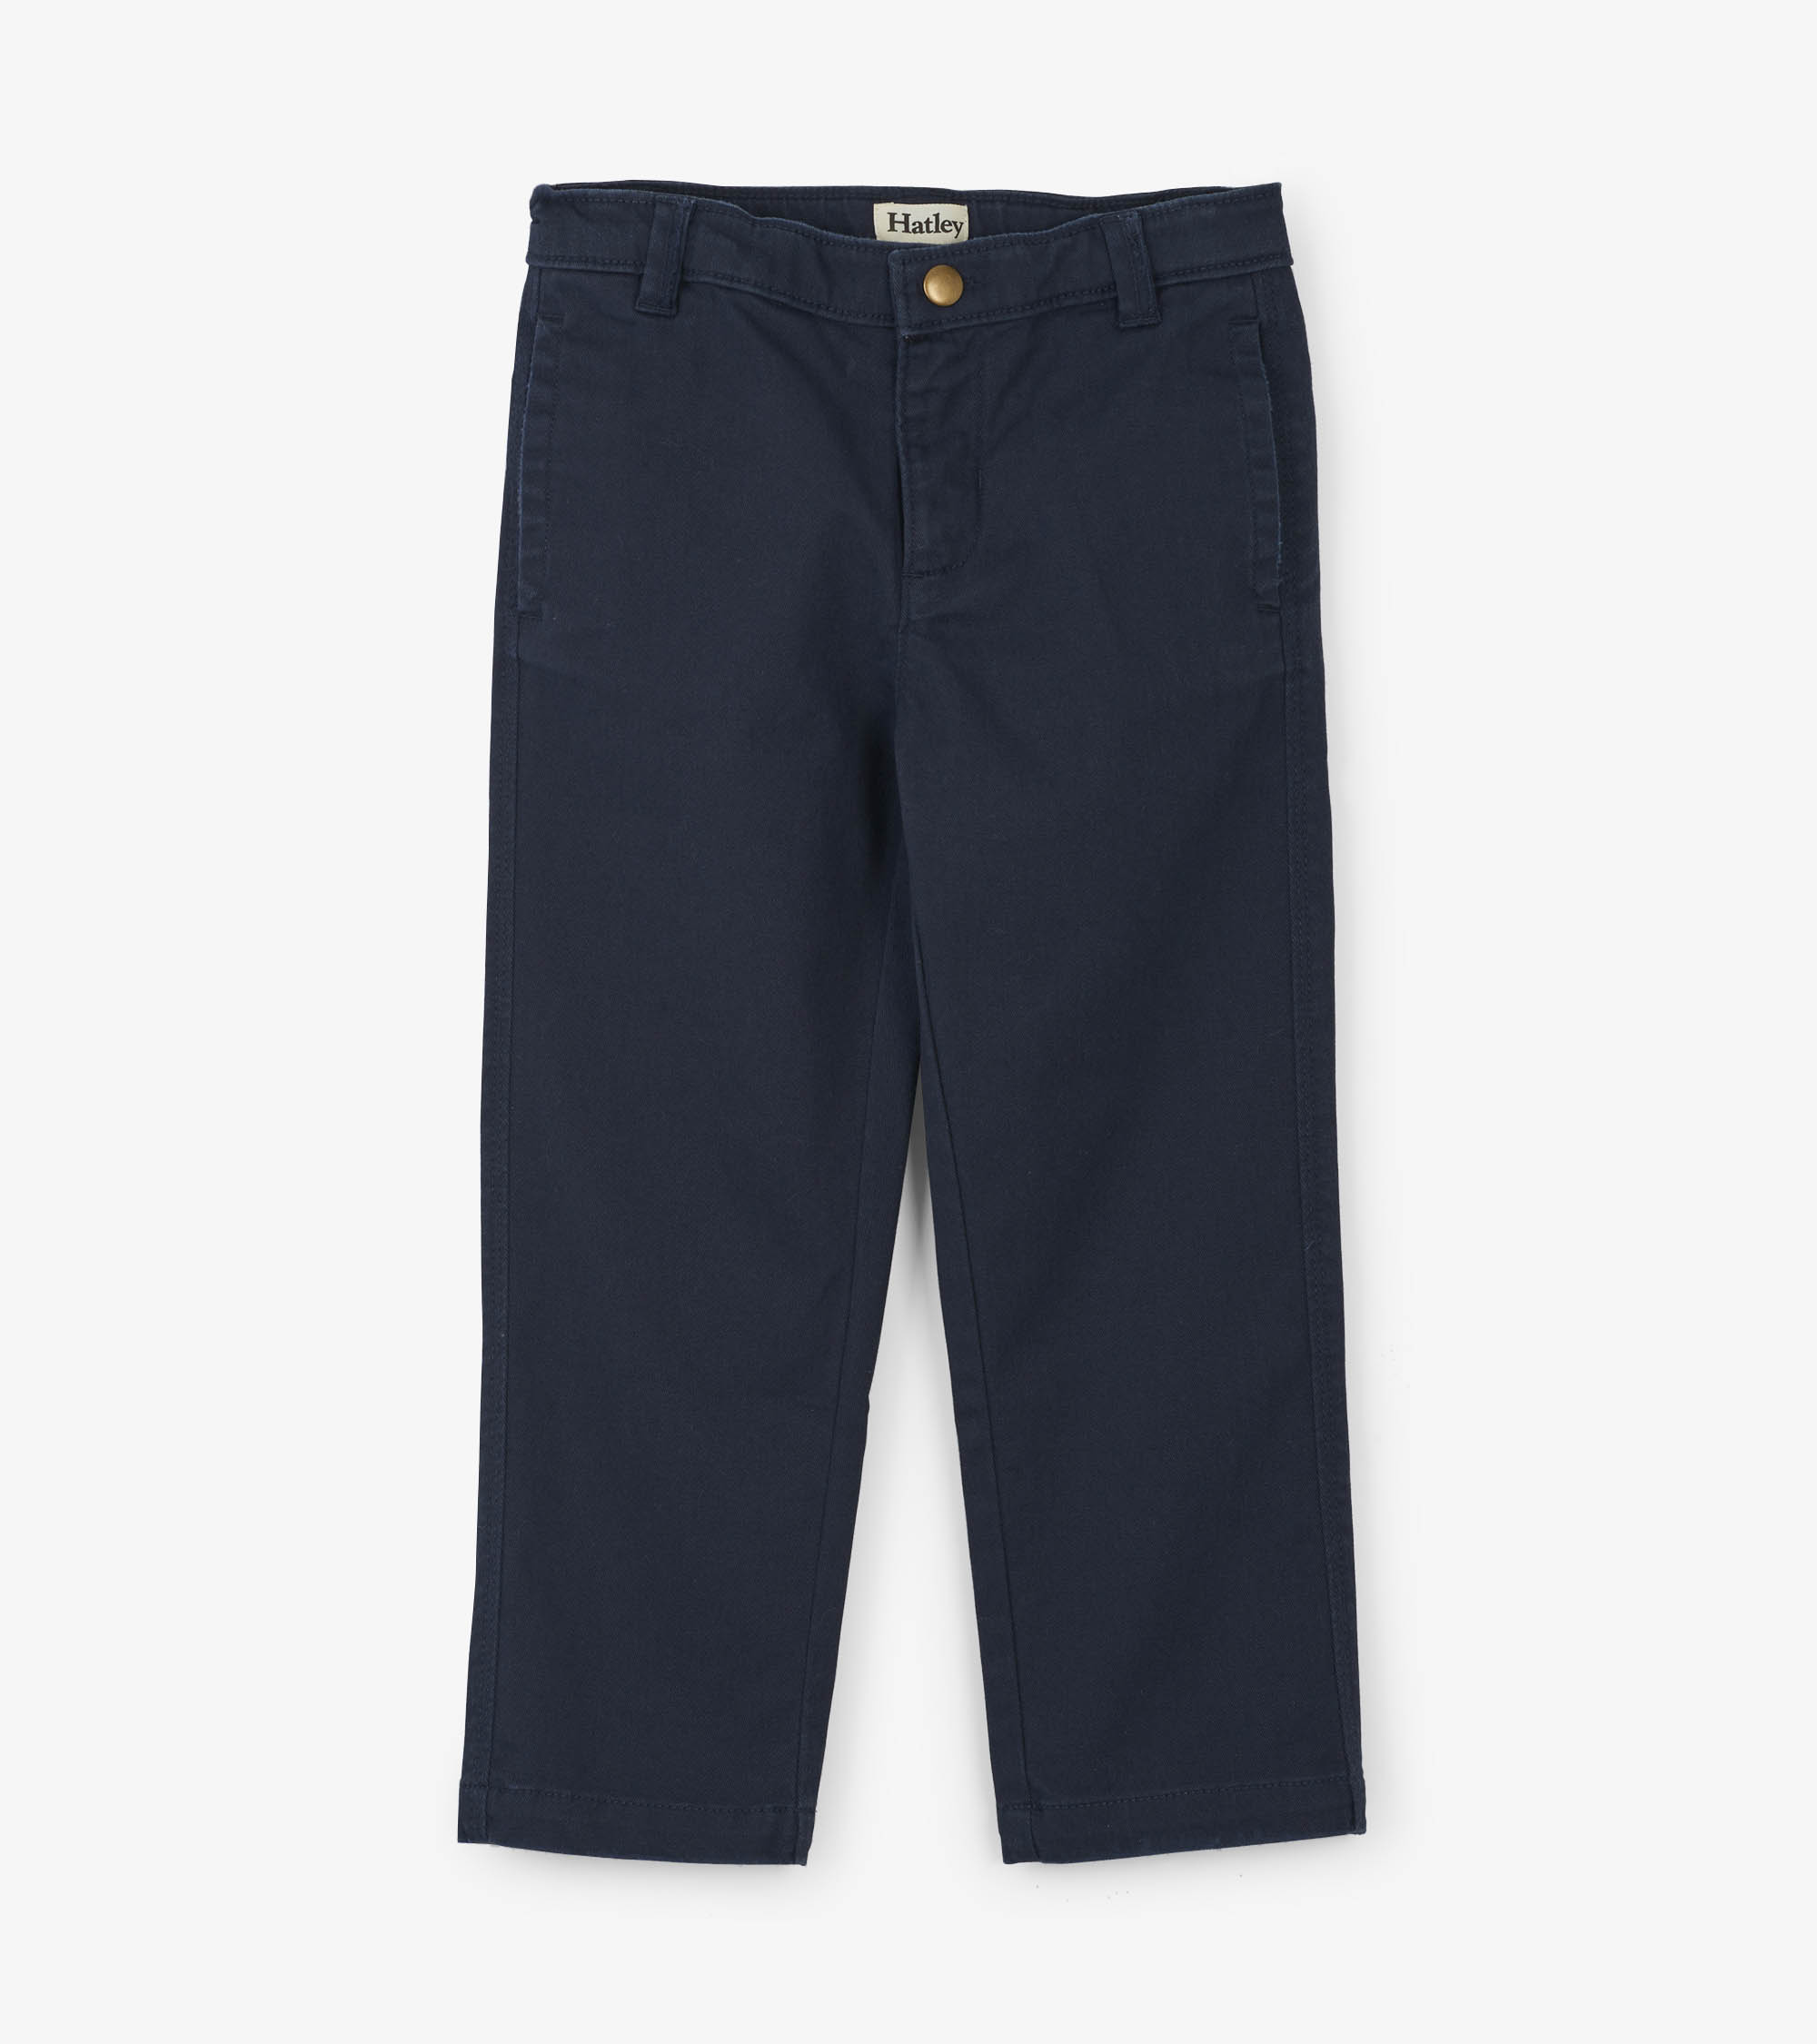 WAS £24.00 Hatley Stretch Twill Trousers Navy